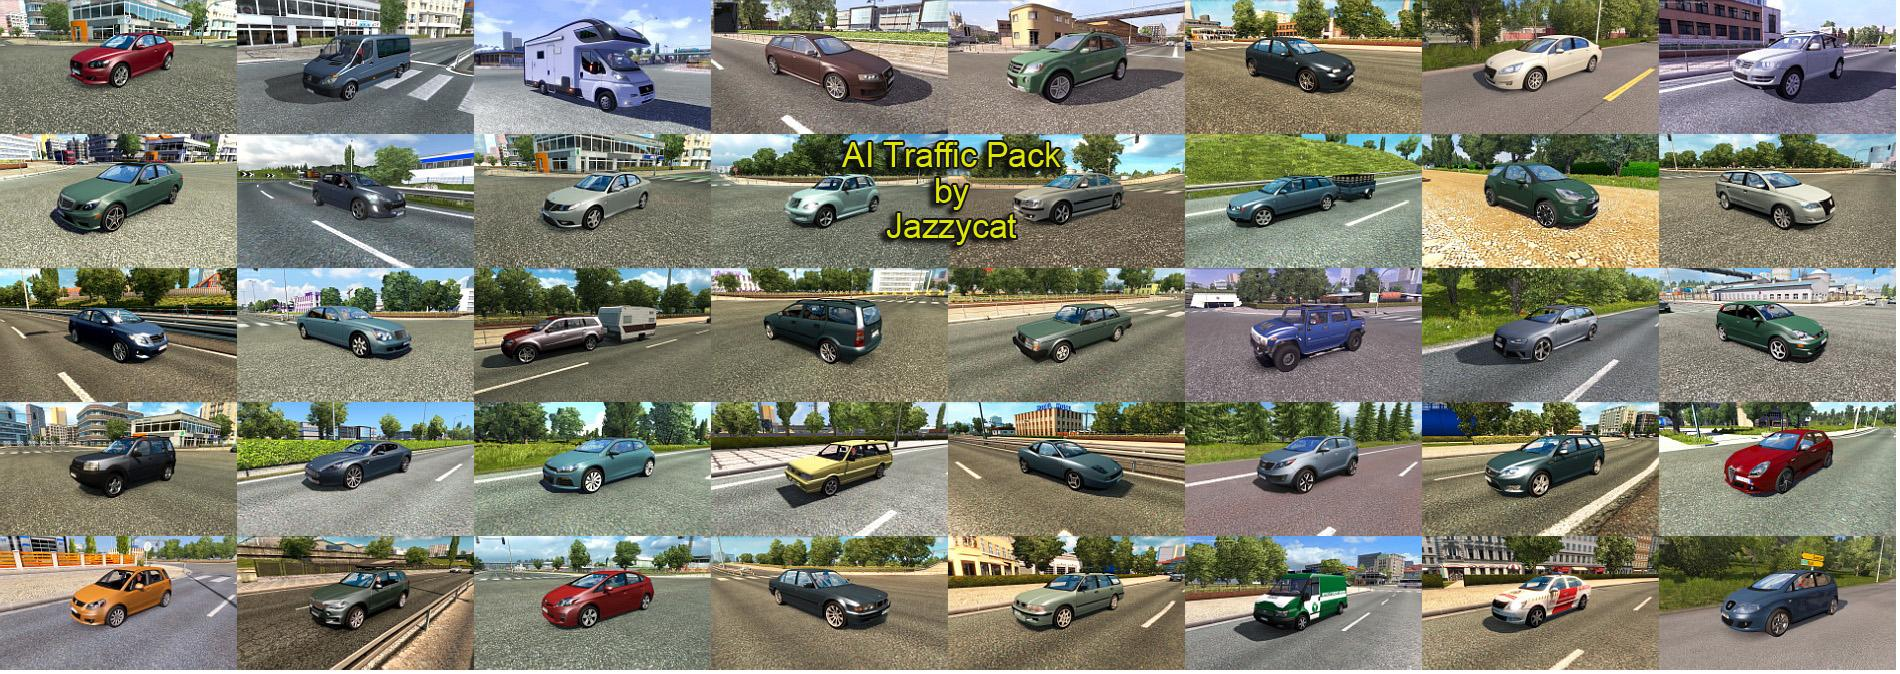 Ai Traffic Pack By Jazzycat V65 For Ets2 Ets2 Mod